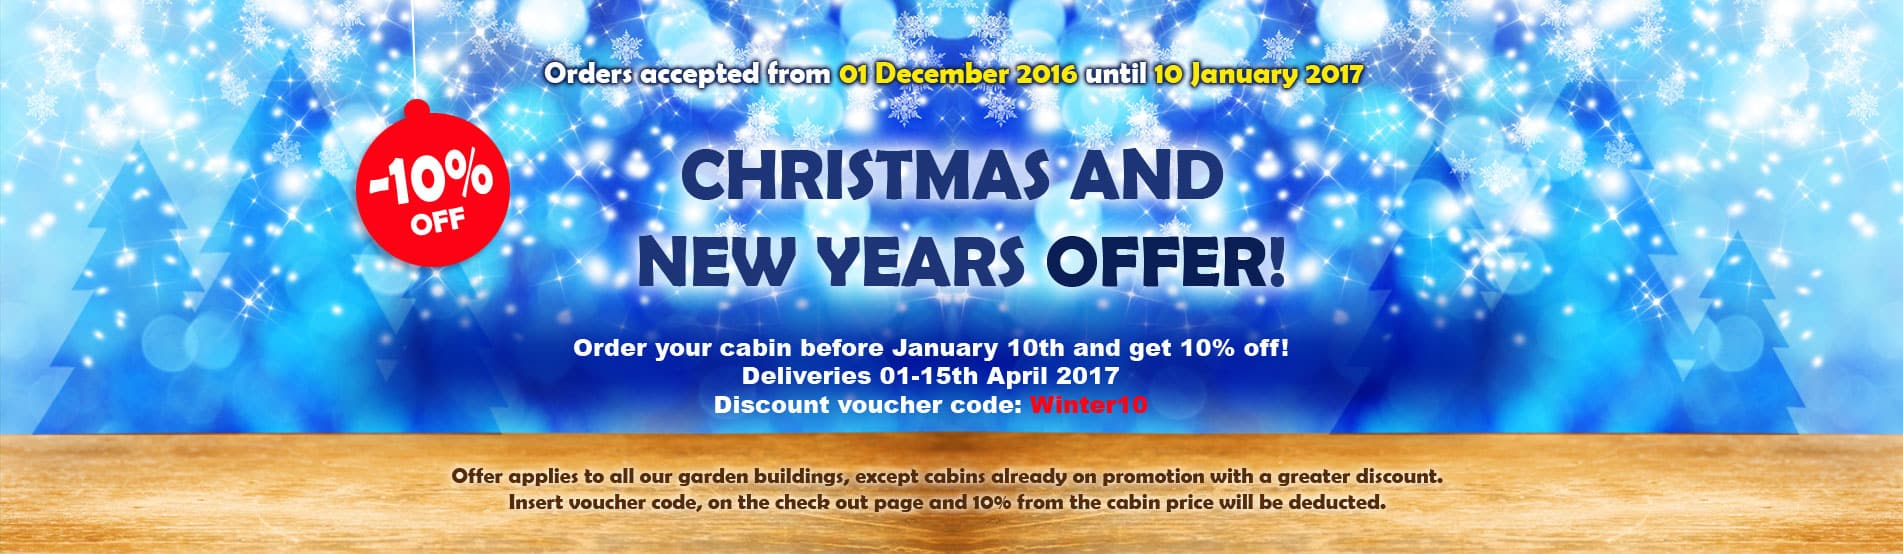 Christmas and New Years Offer